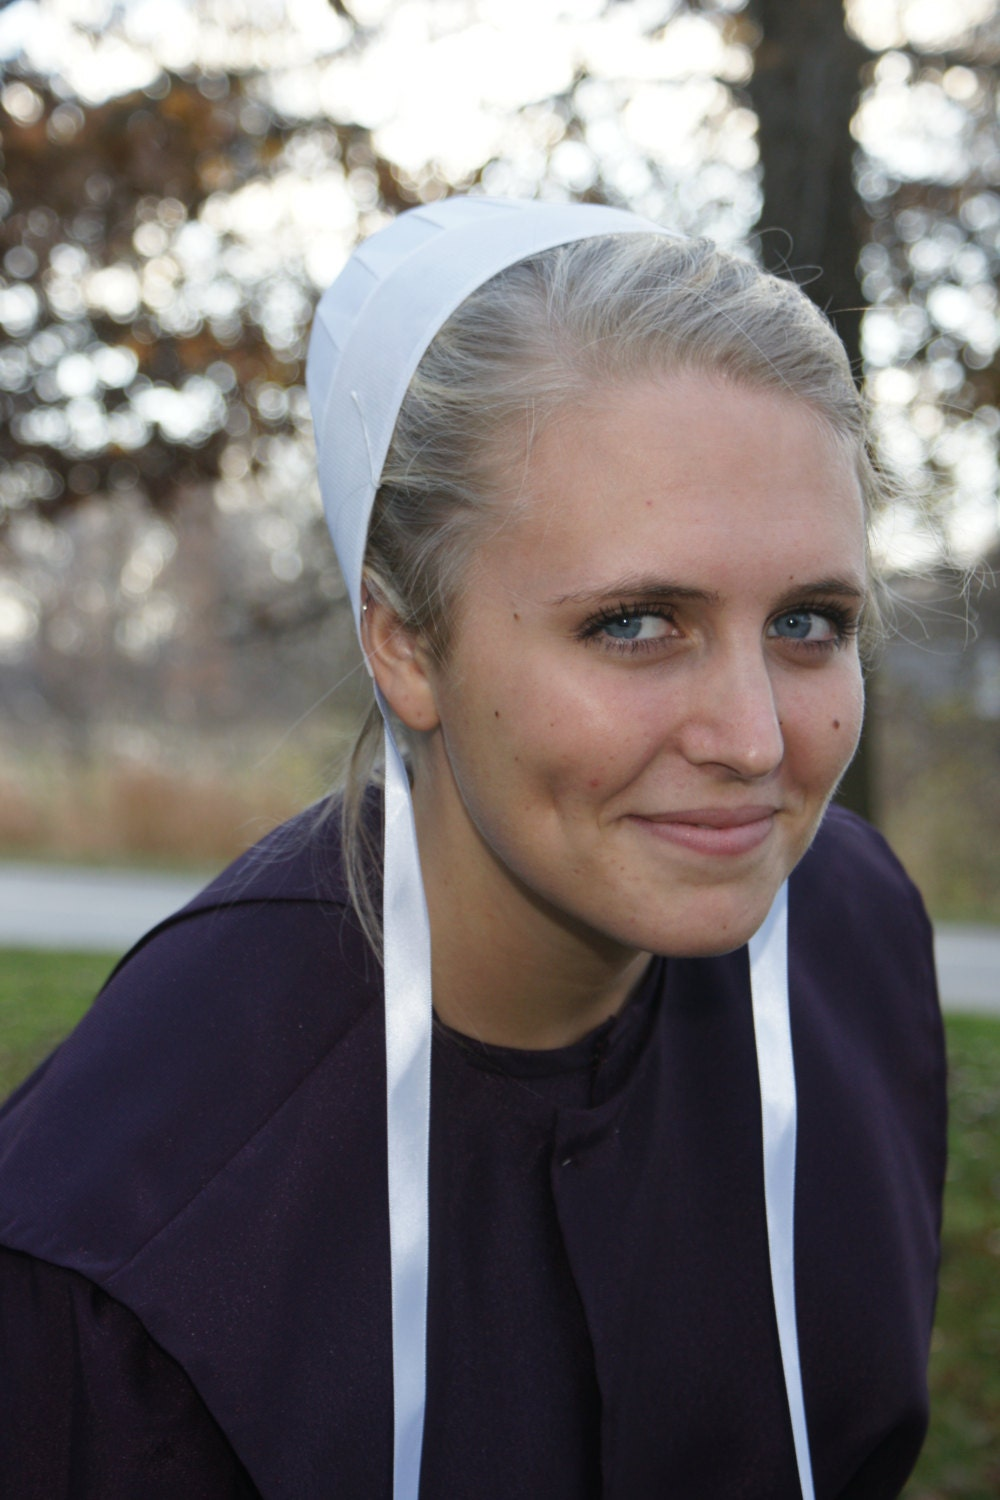 Amish Woman's Covering Cap Kapp Bonnet with strings